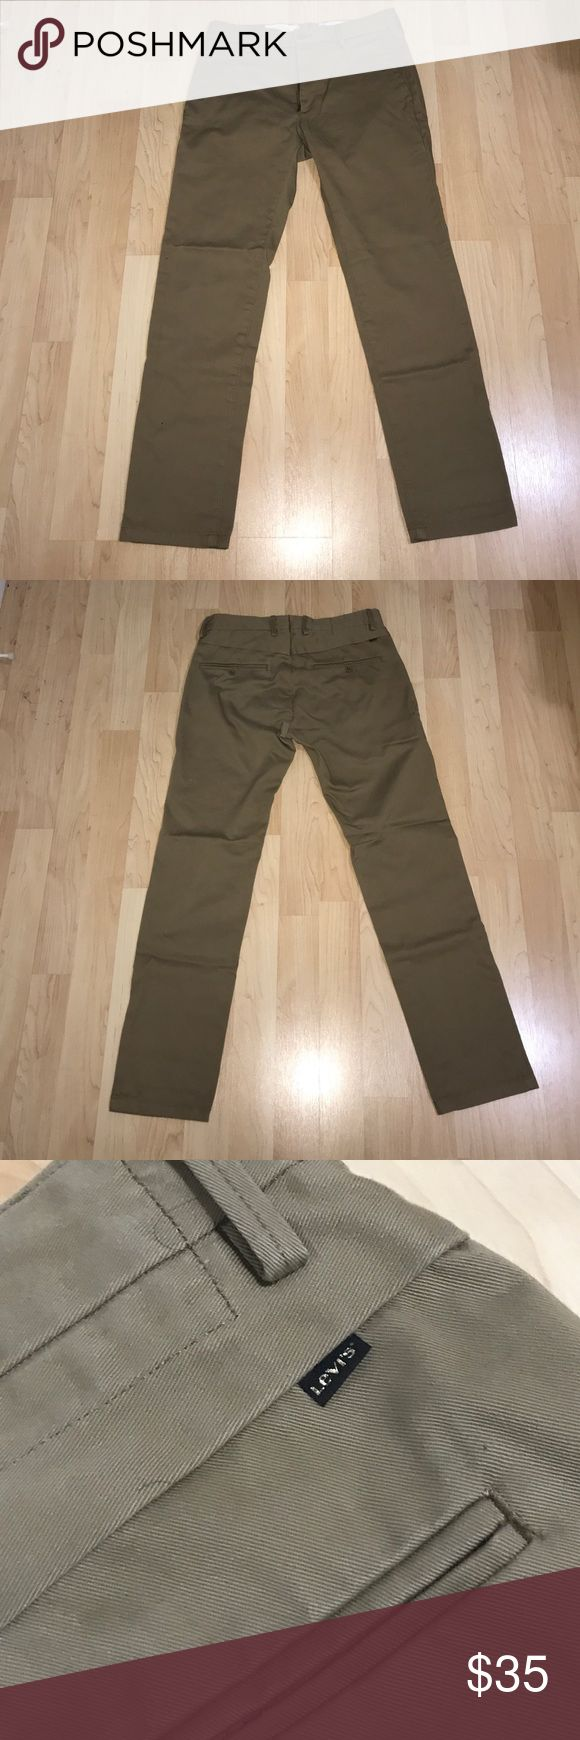 LEVIS MENS KHAKIS PANTS (W32xL32) Barely worn pants. Got them few years back for khaki day at work and only worn it once since. Not really a khaki kind of person. These are great condition, no stains or rips. 9/10 Levi's Pants Chinos & Khakis